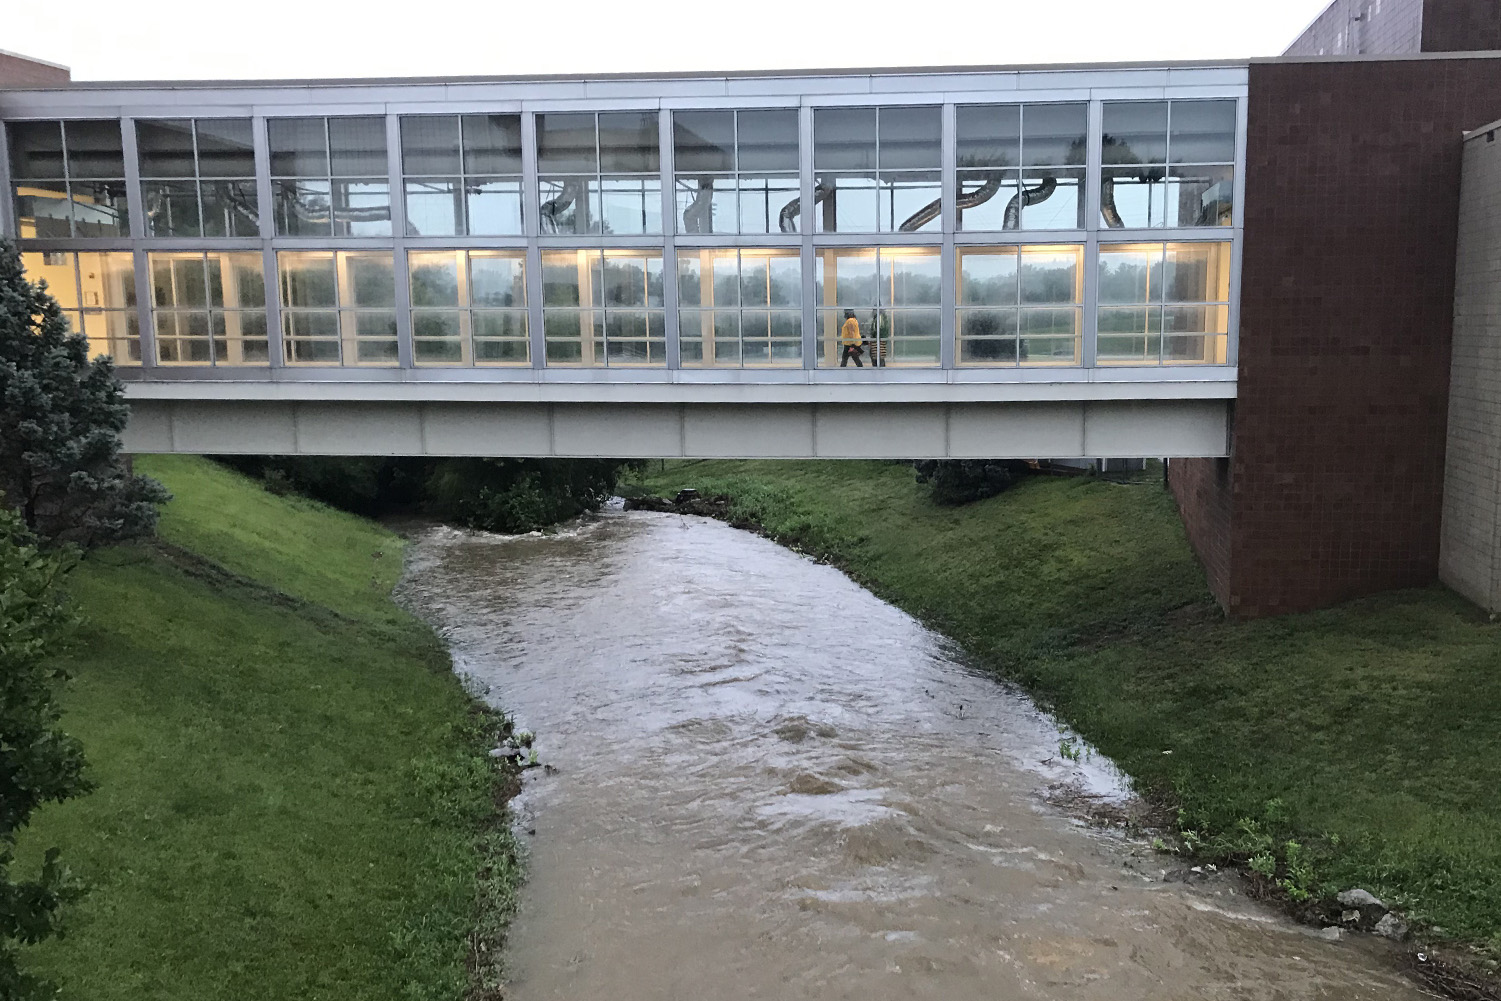 Flooding takes place early in the school year.